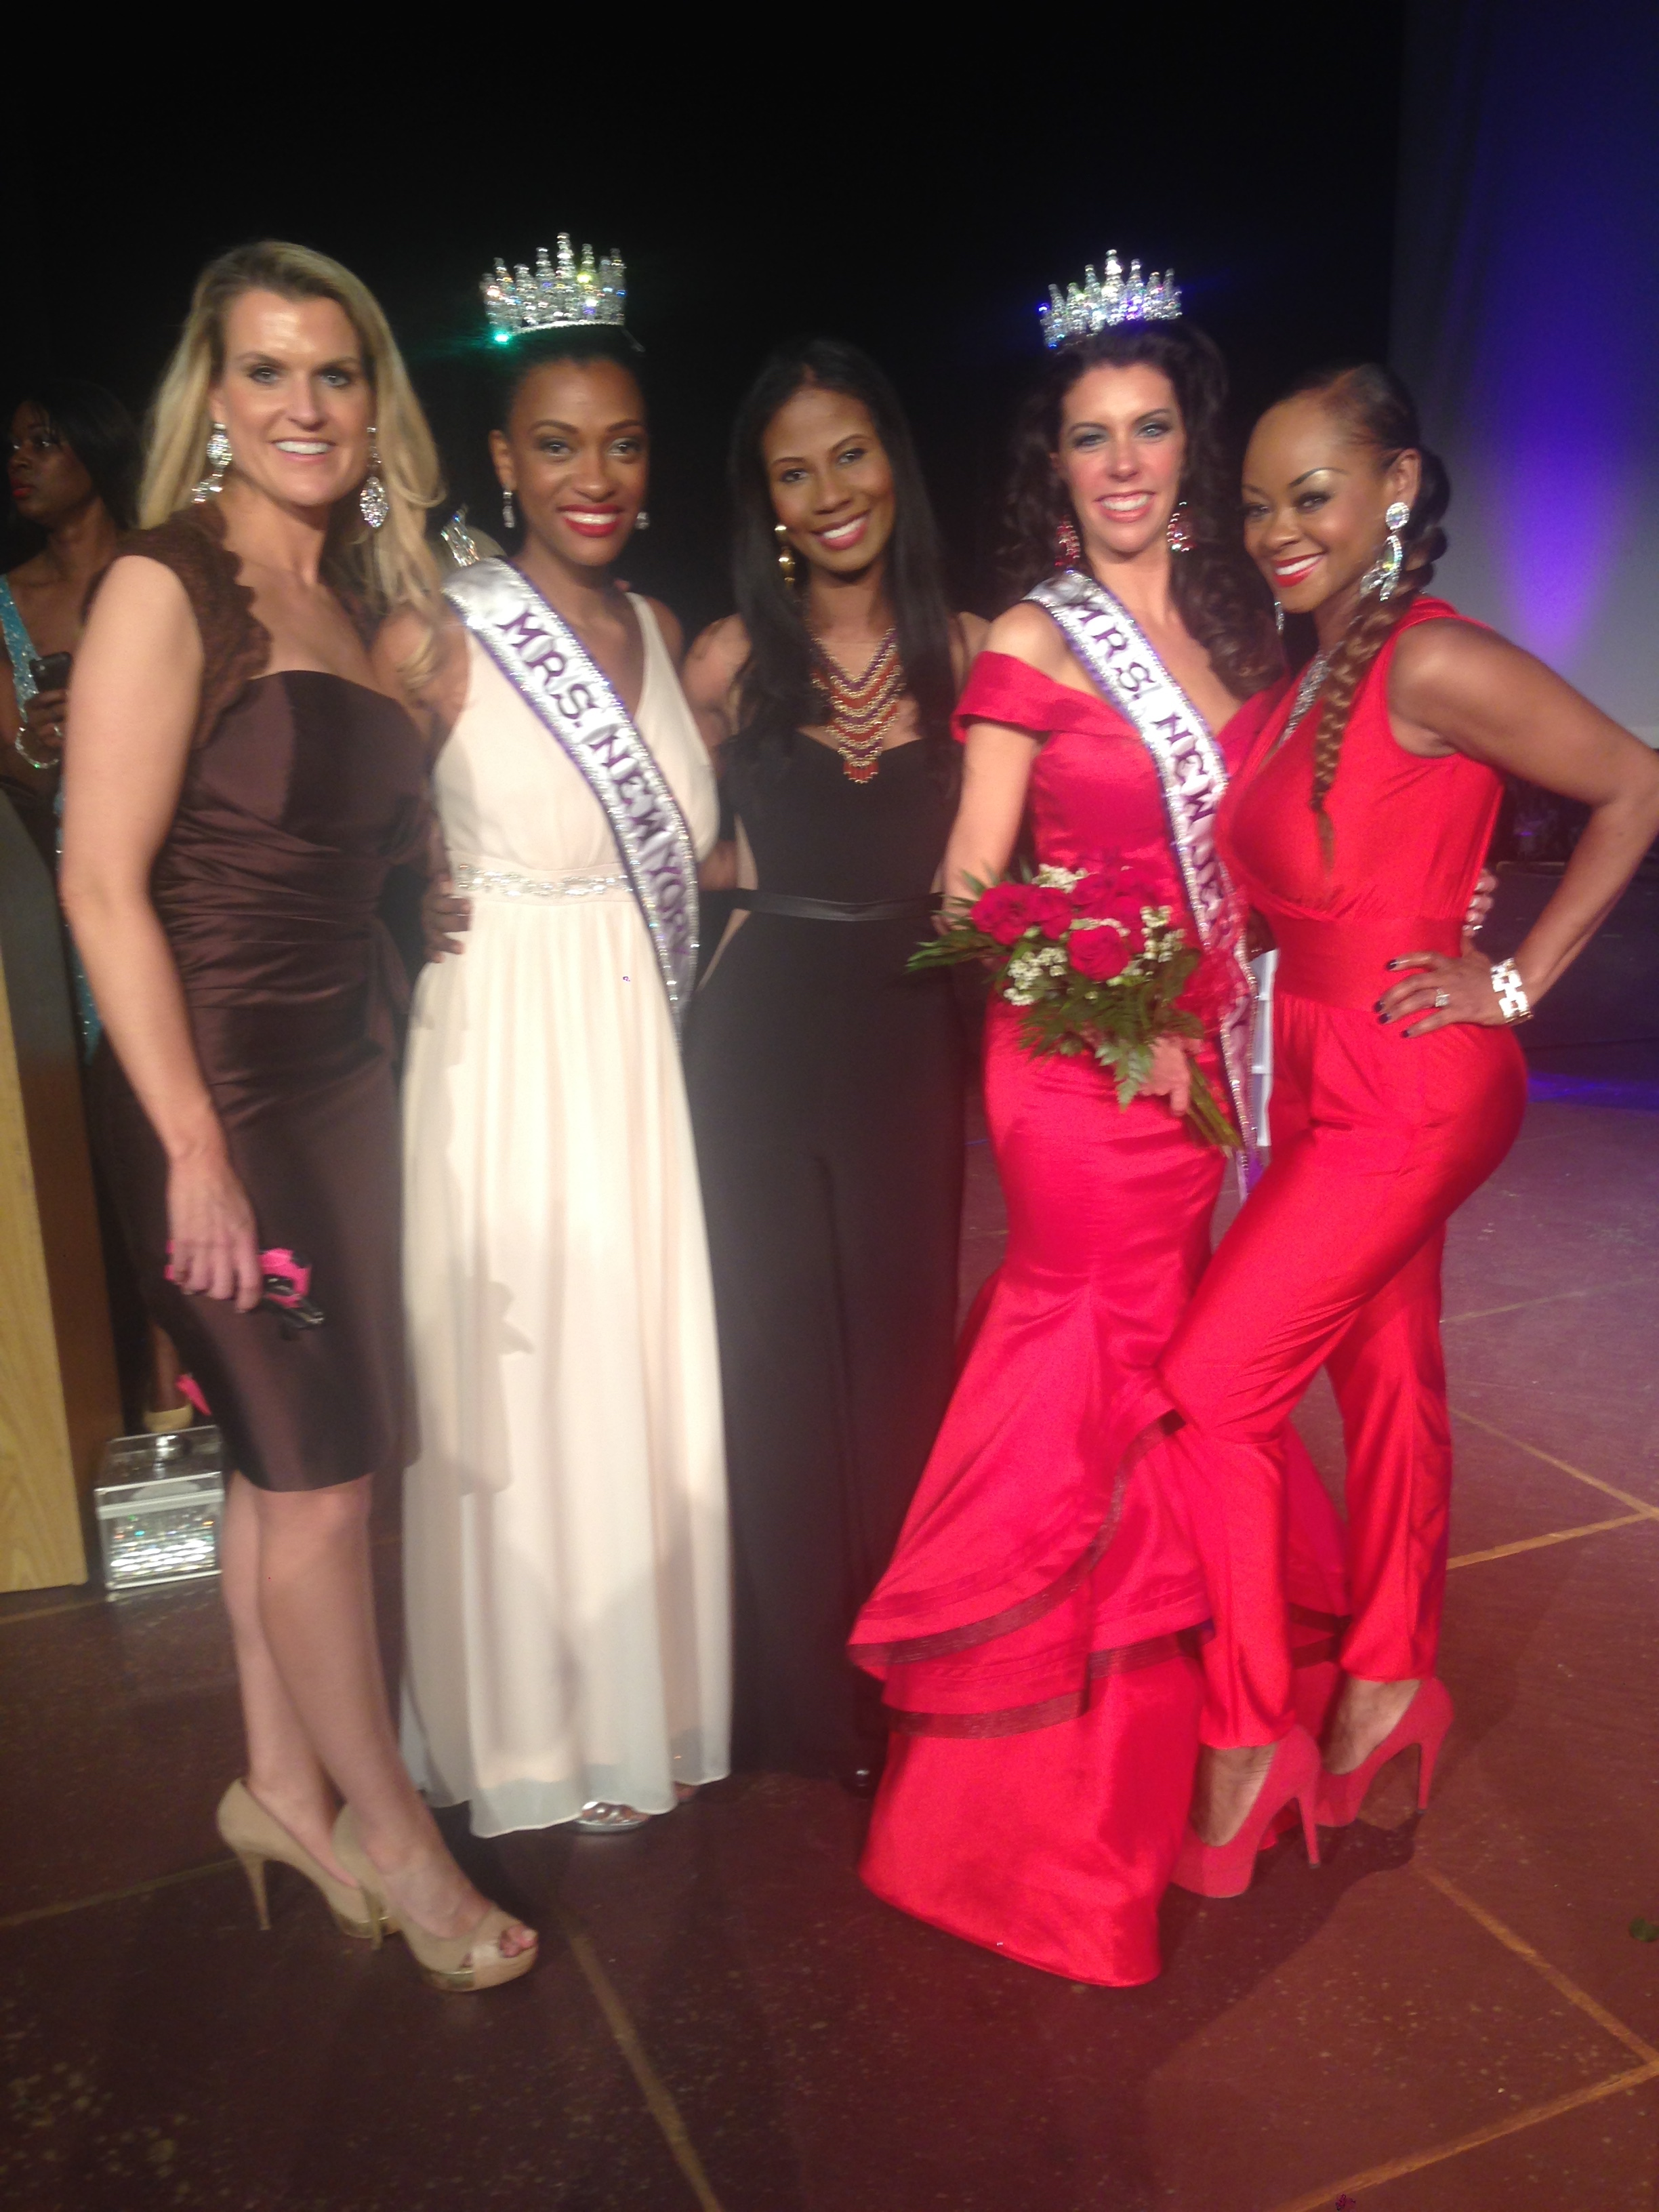 With the newly crowned Mrs. New Jersey Queen Amber Rae Mack